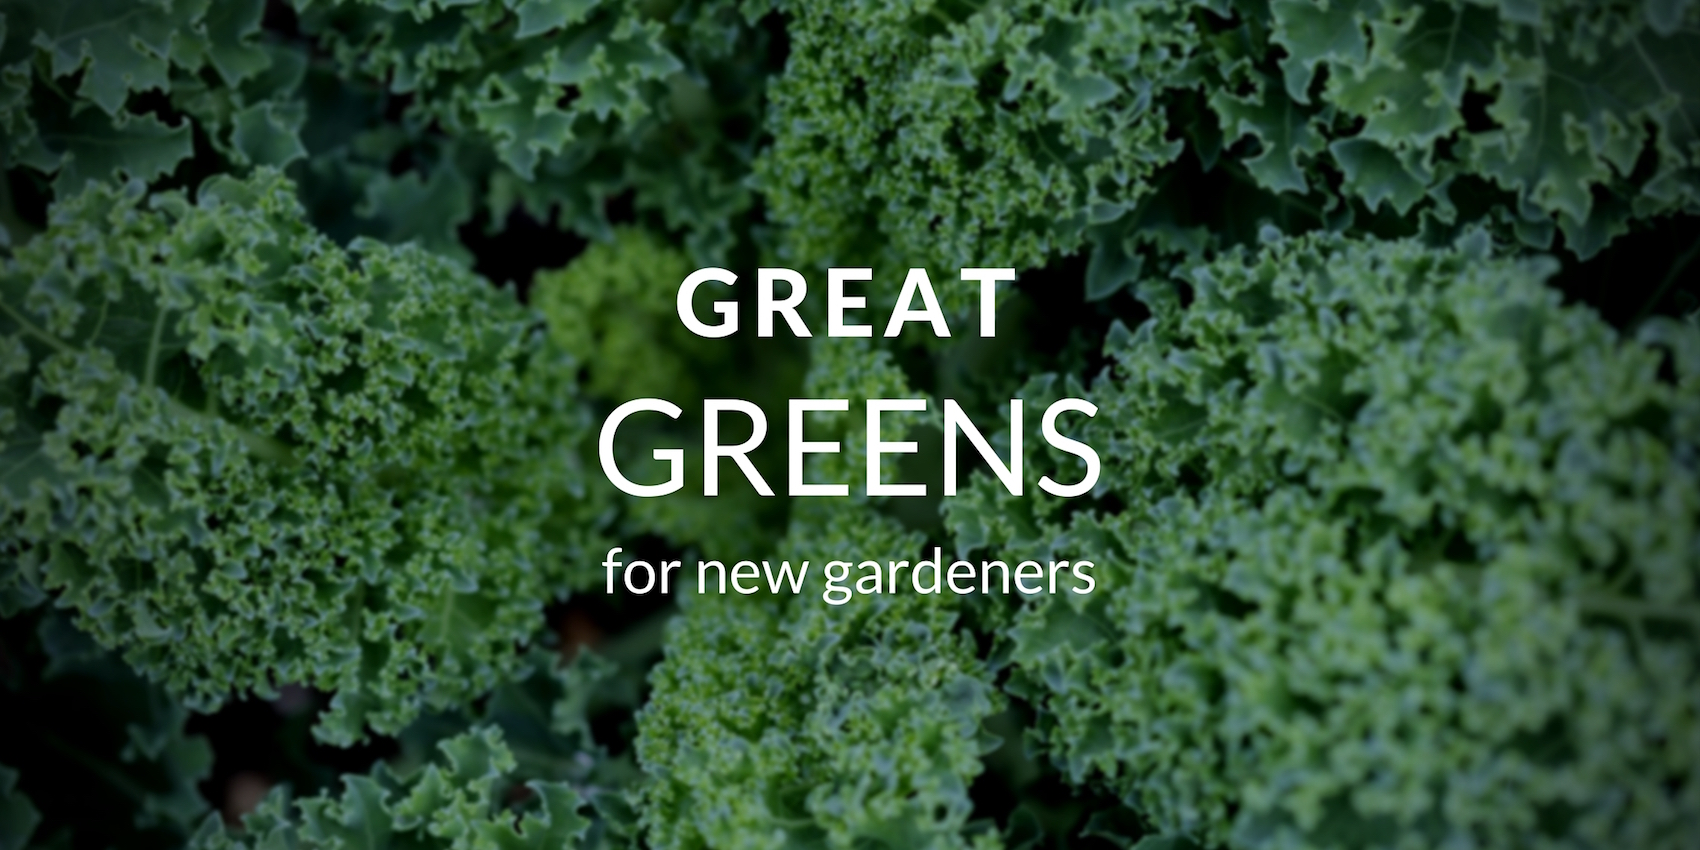 Great Greens New Gardeners Should Grow